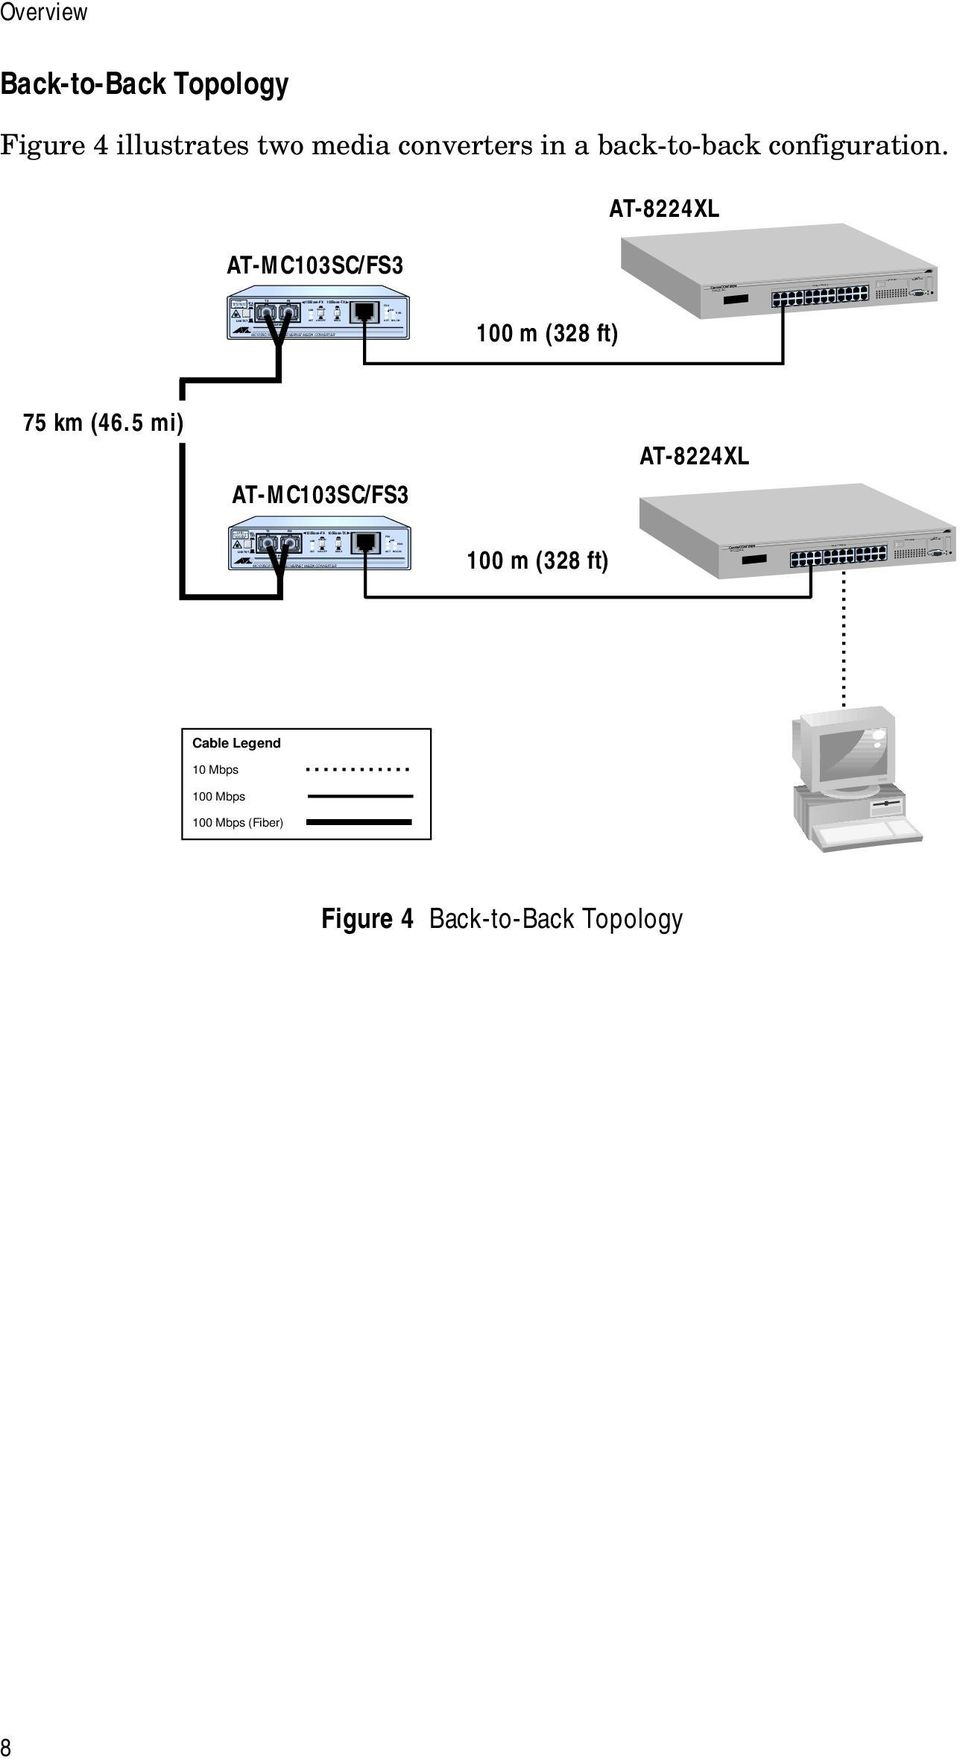 ON 10BASE-T / 100BASE-TX FAST ETHERNET SWITCH 10BASE-T / 100BASE-TX FAST ETHERNET SWITCH 10BASE-T / 100BASE-TX 10BASE-T / 100BASE-TX PORT ACTIVITY PORT ACTIVITY RS-232 TERMINAL PORT STATUS RS-232